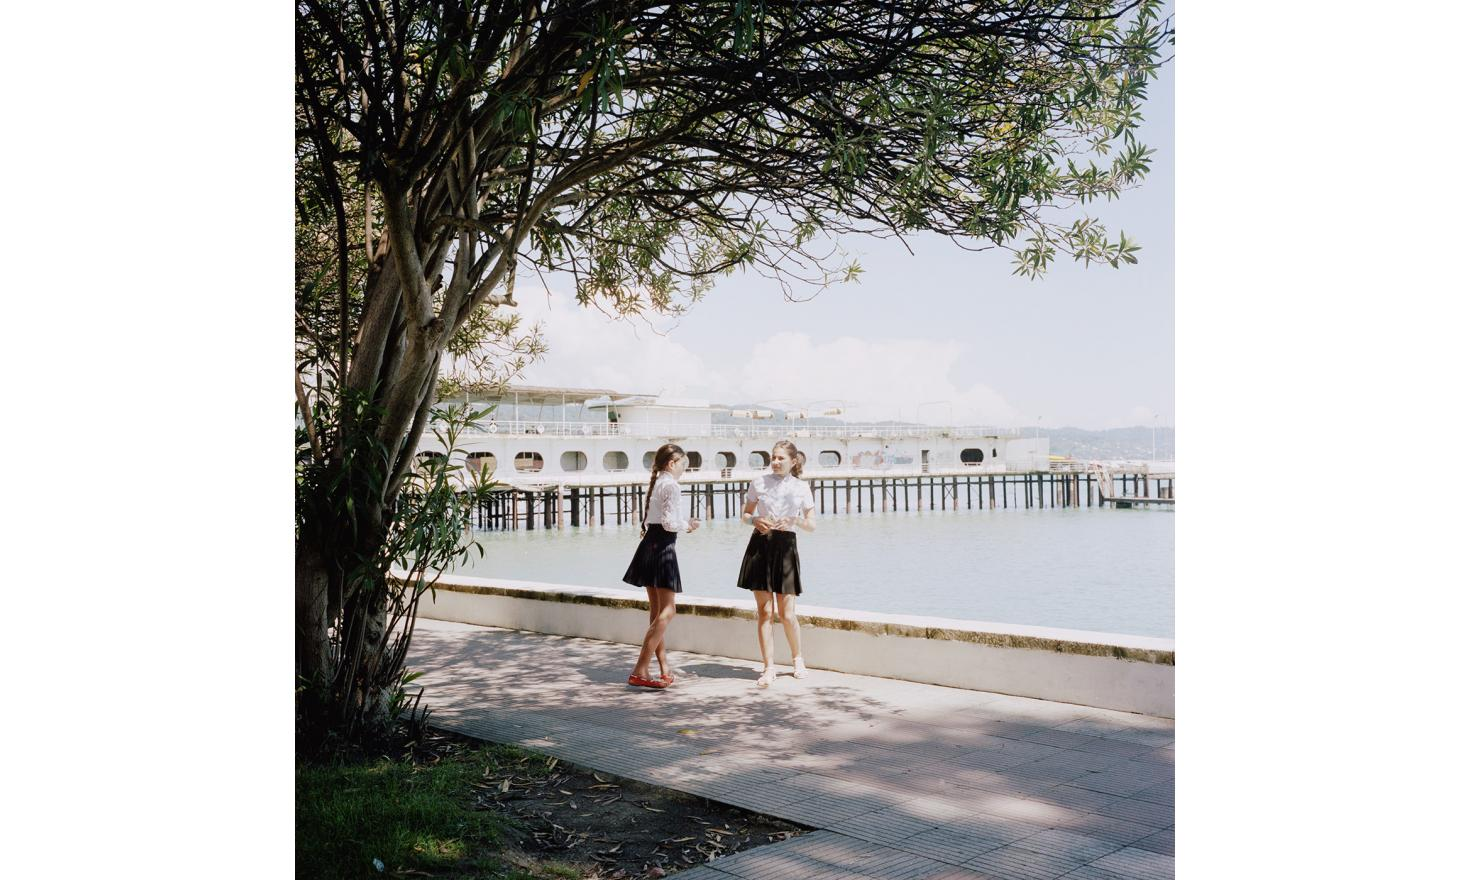 Two young girls along the seaside